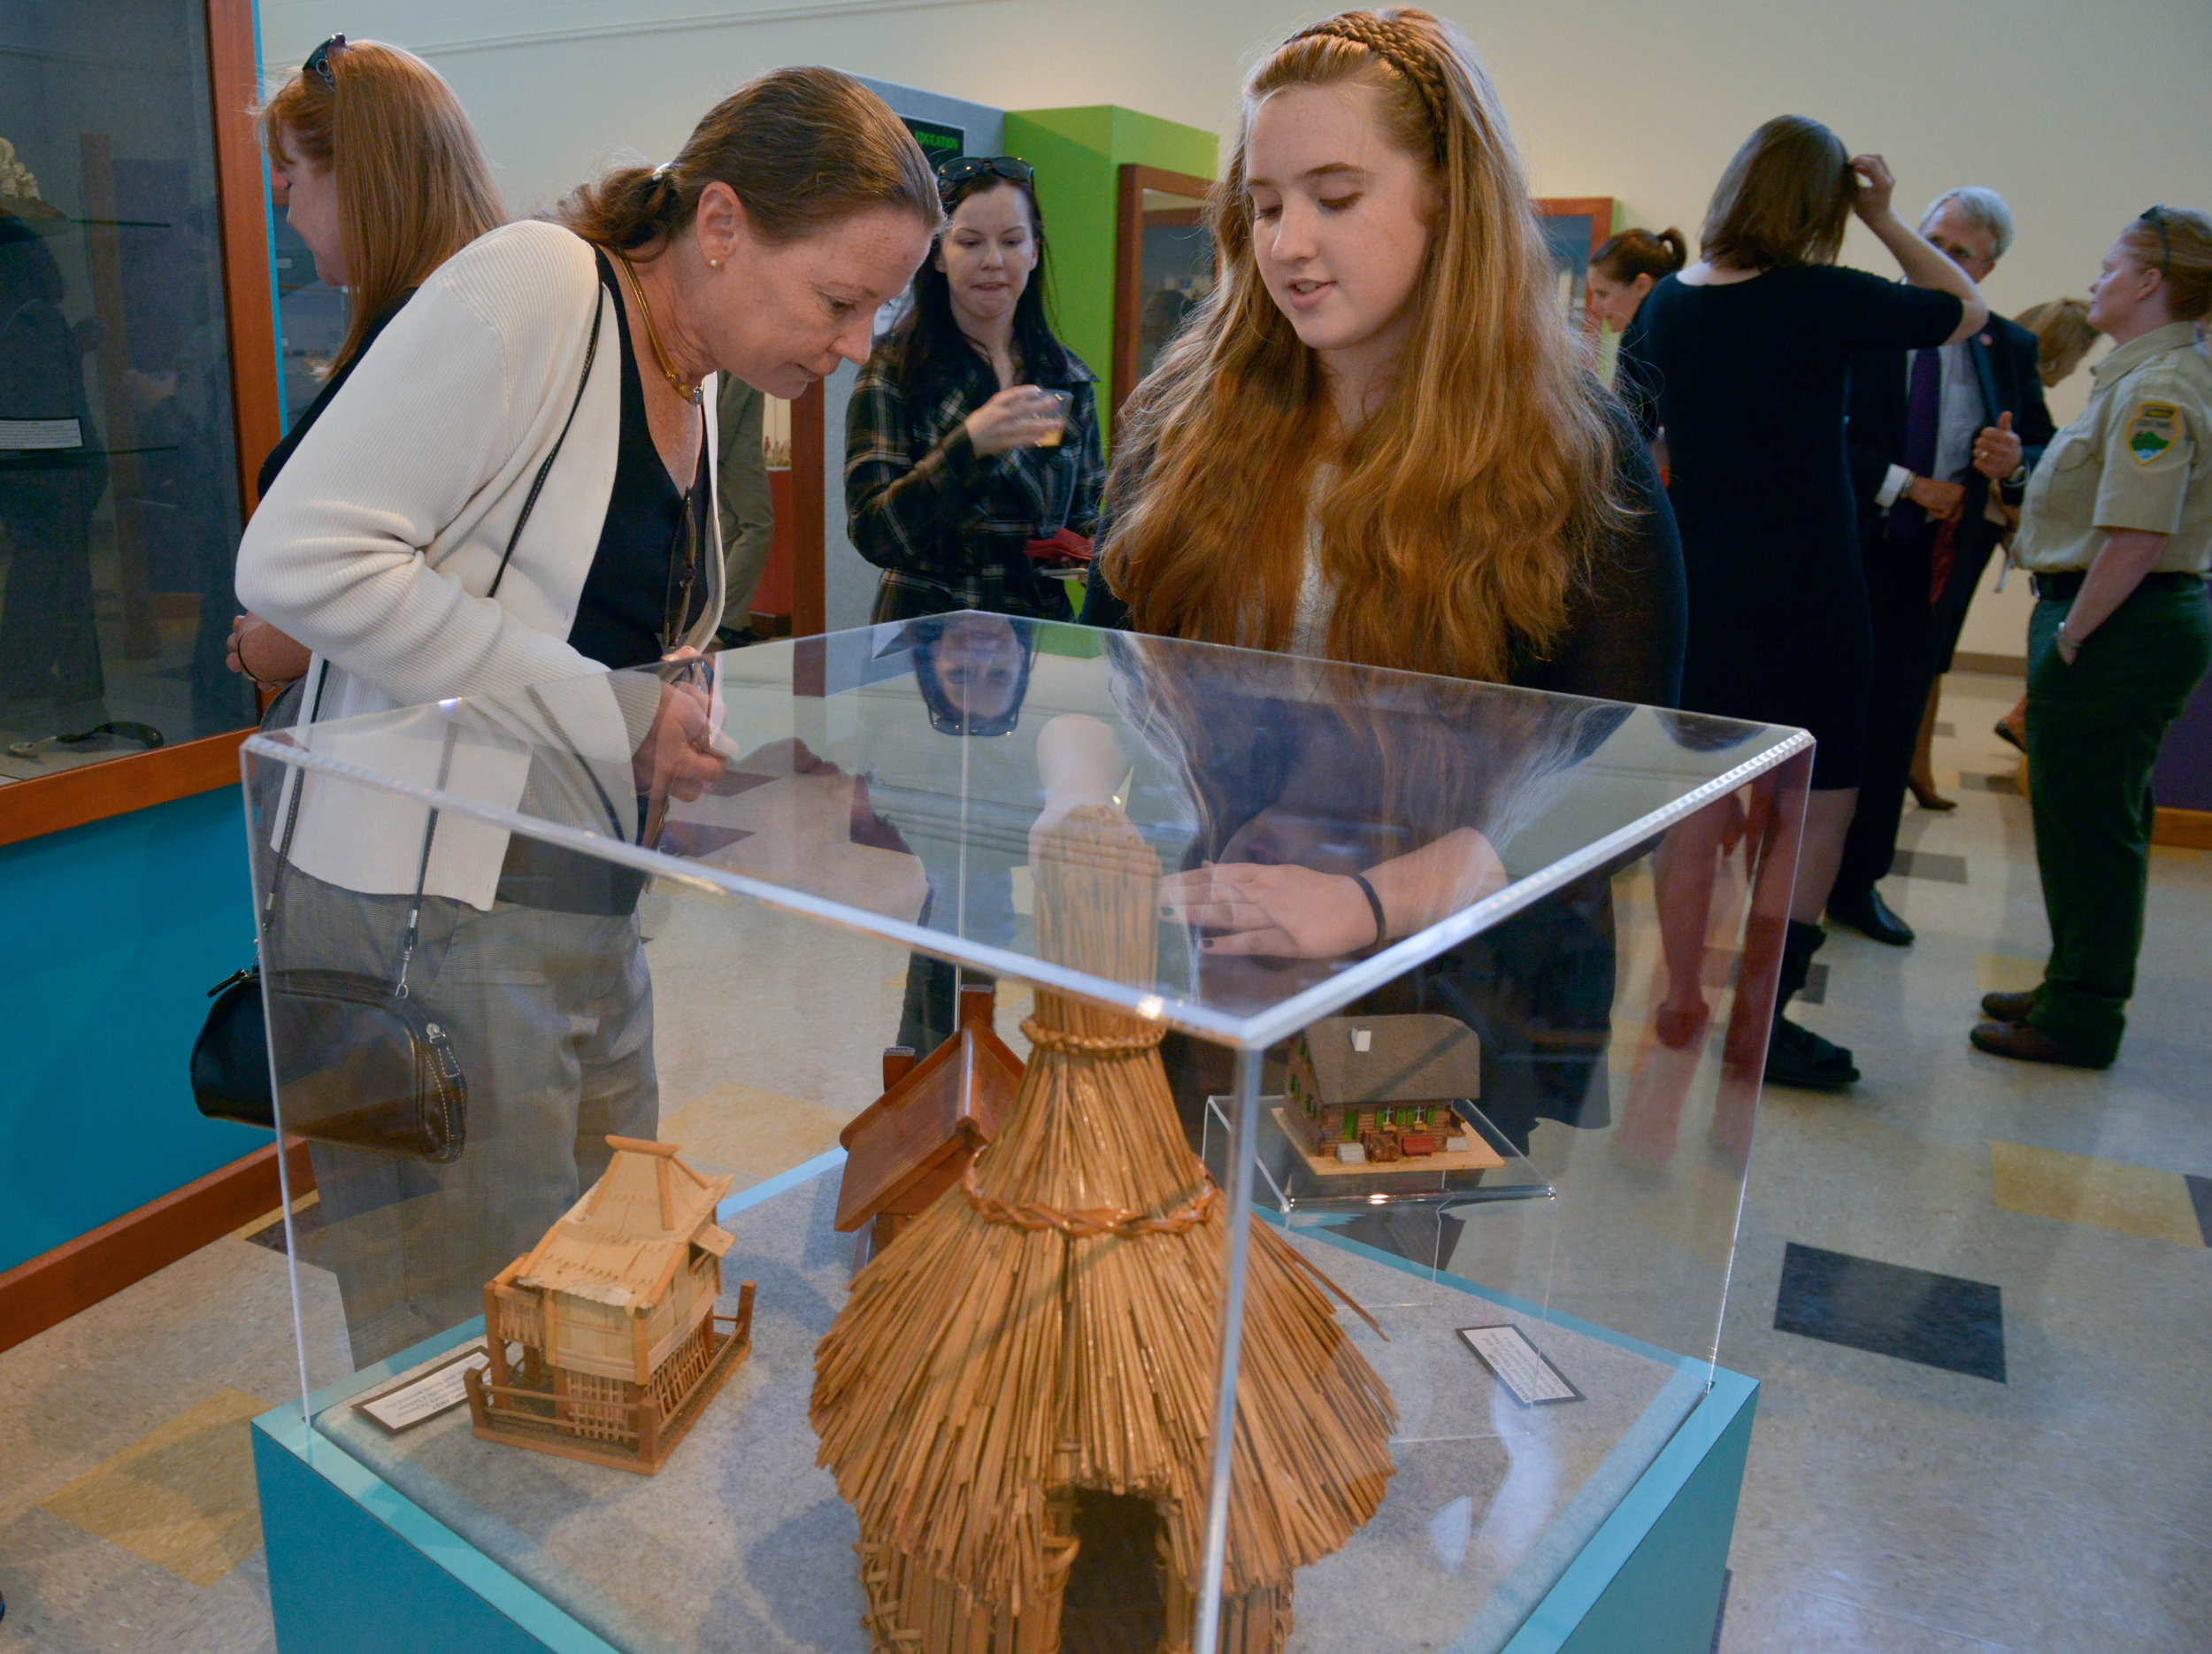 Davina Dunlap, a student at John Early Museum Magnet school explains an exhibit to Tia Wheeler at a ribbon-cutting celebration October 22, 2015 in Nashville, Tenn.